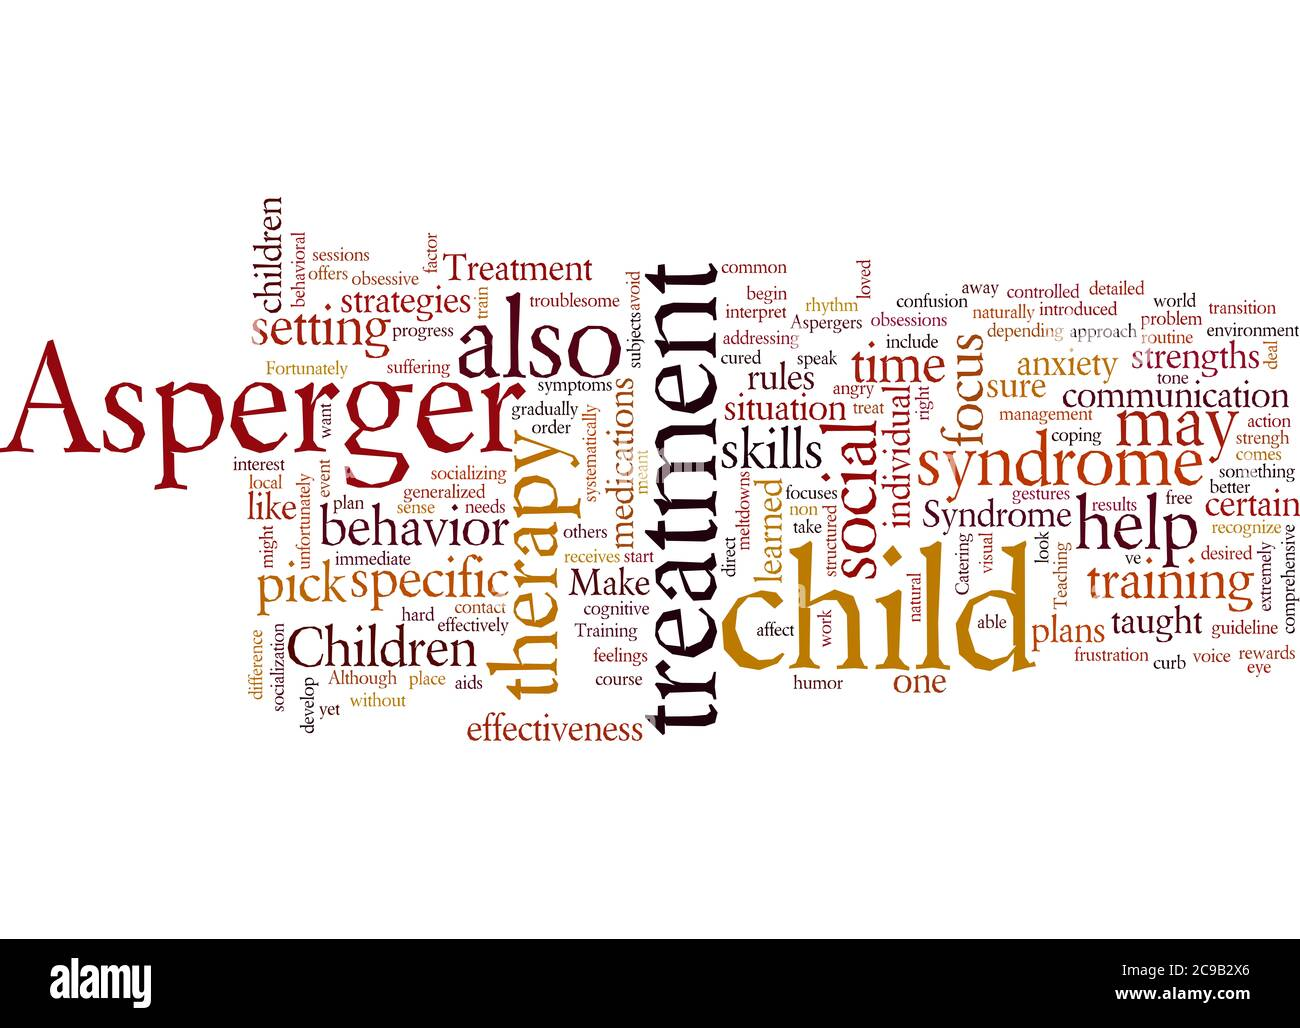 Word Cloud Summary of Aspergers Treatment Article Stock Photo